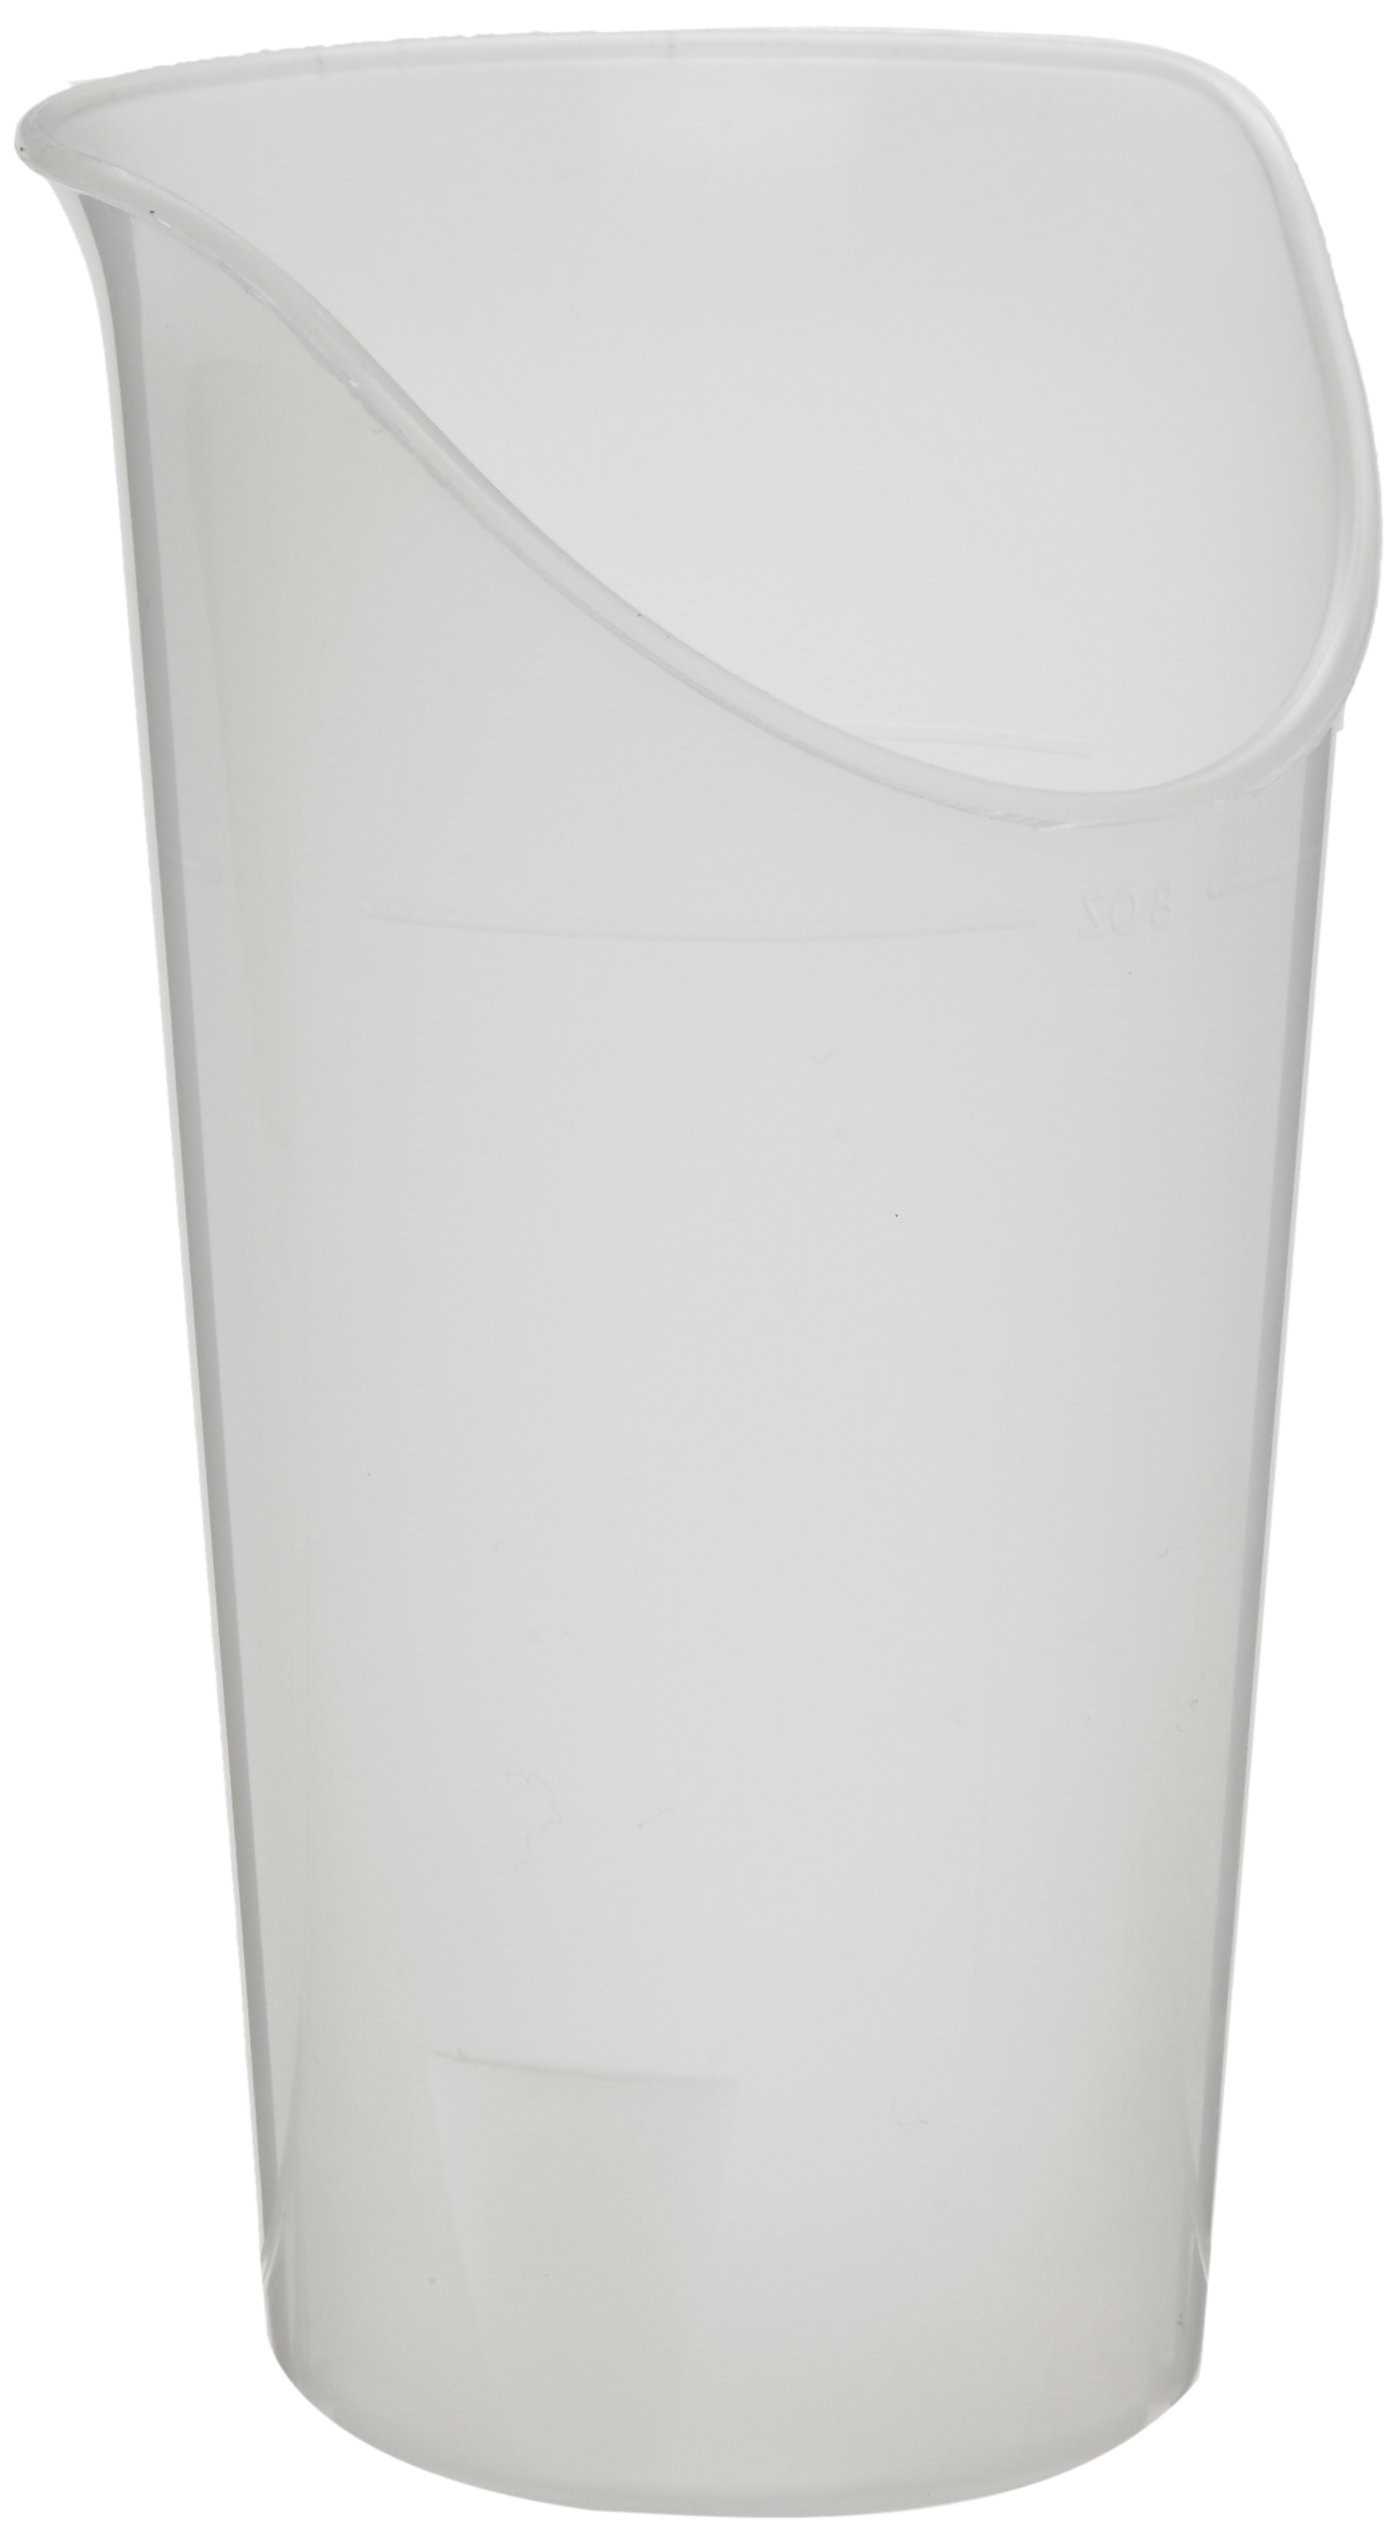 Ableware Clear Nosey Cup, 6-Pack (745930614)